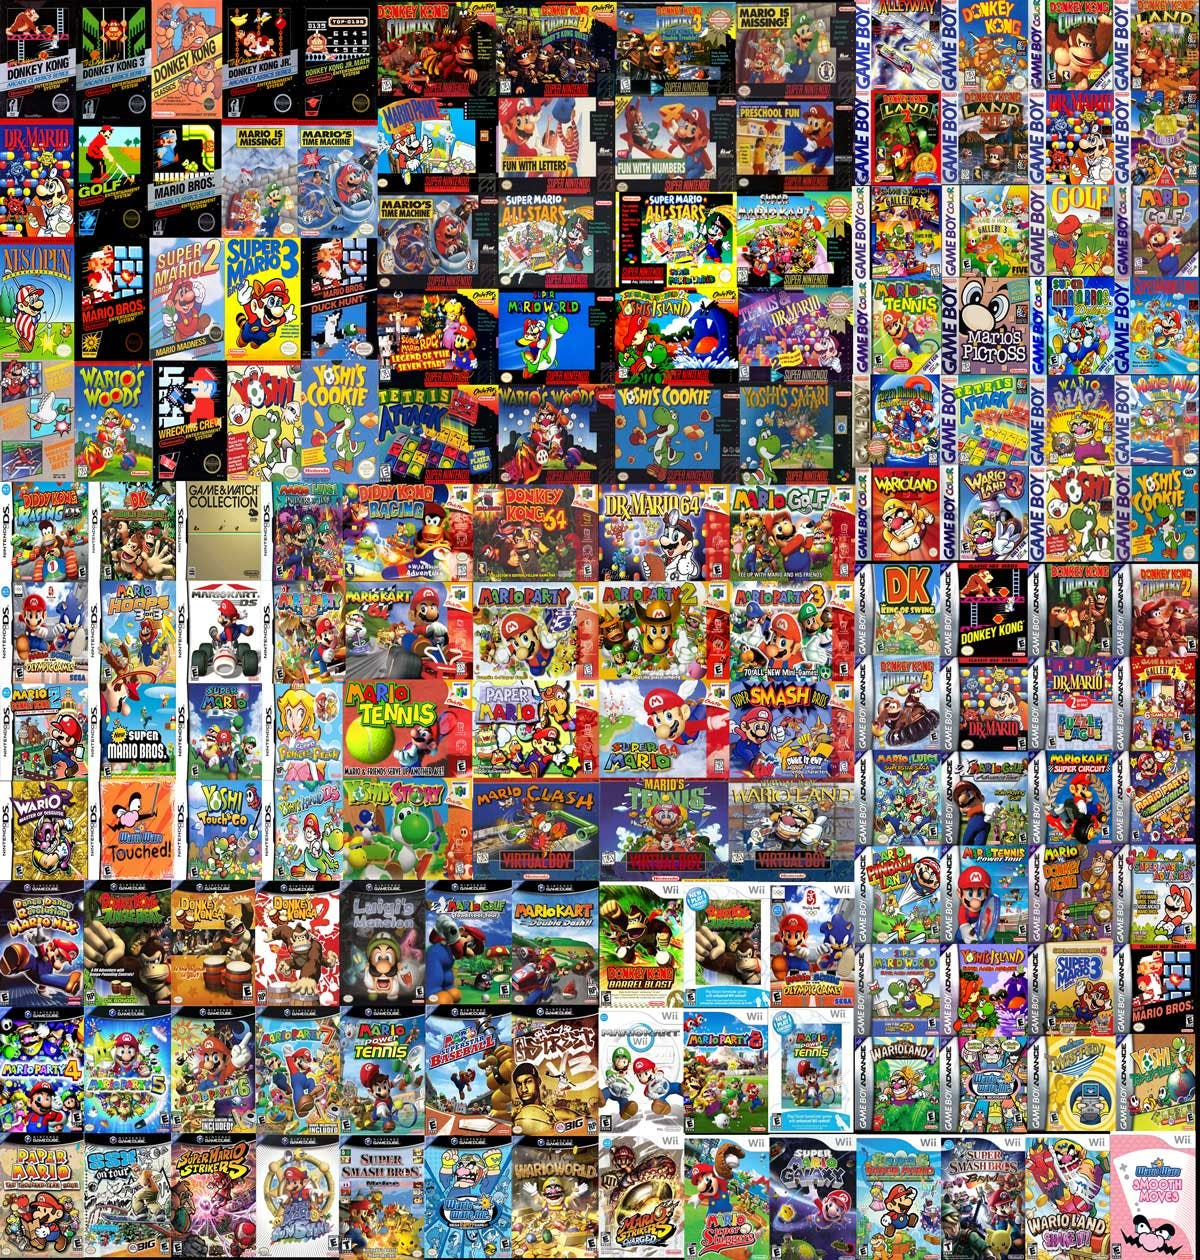 Loads and loads of Mario games